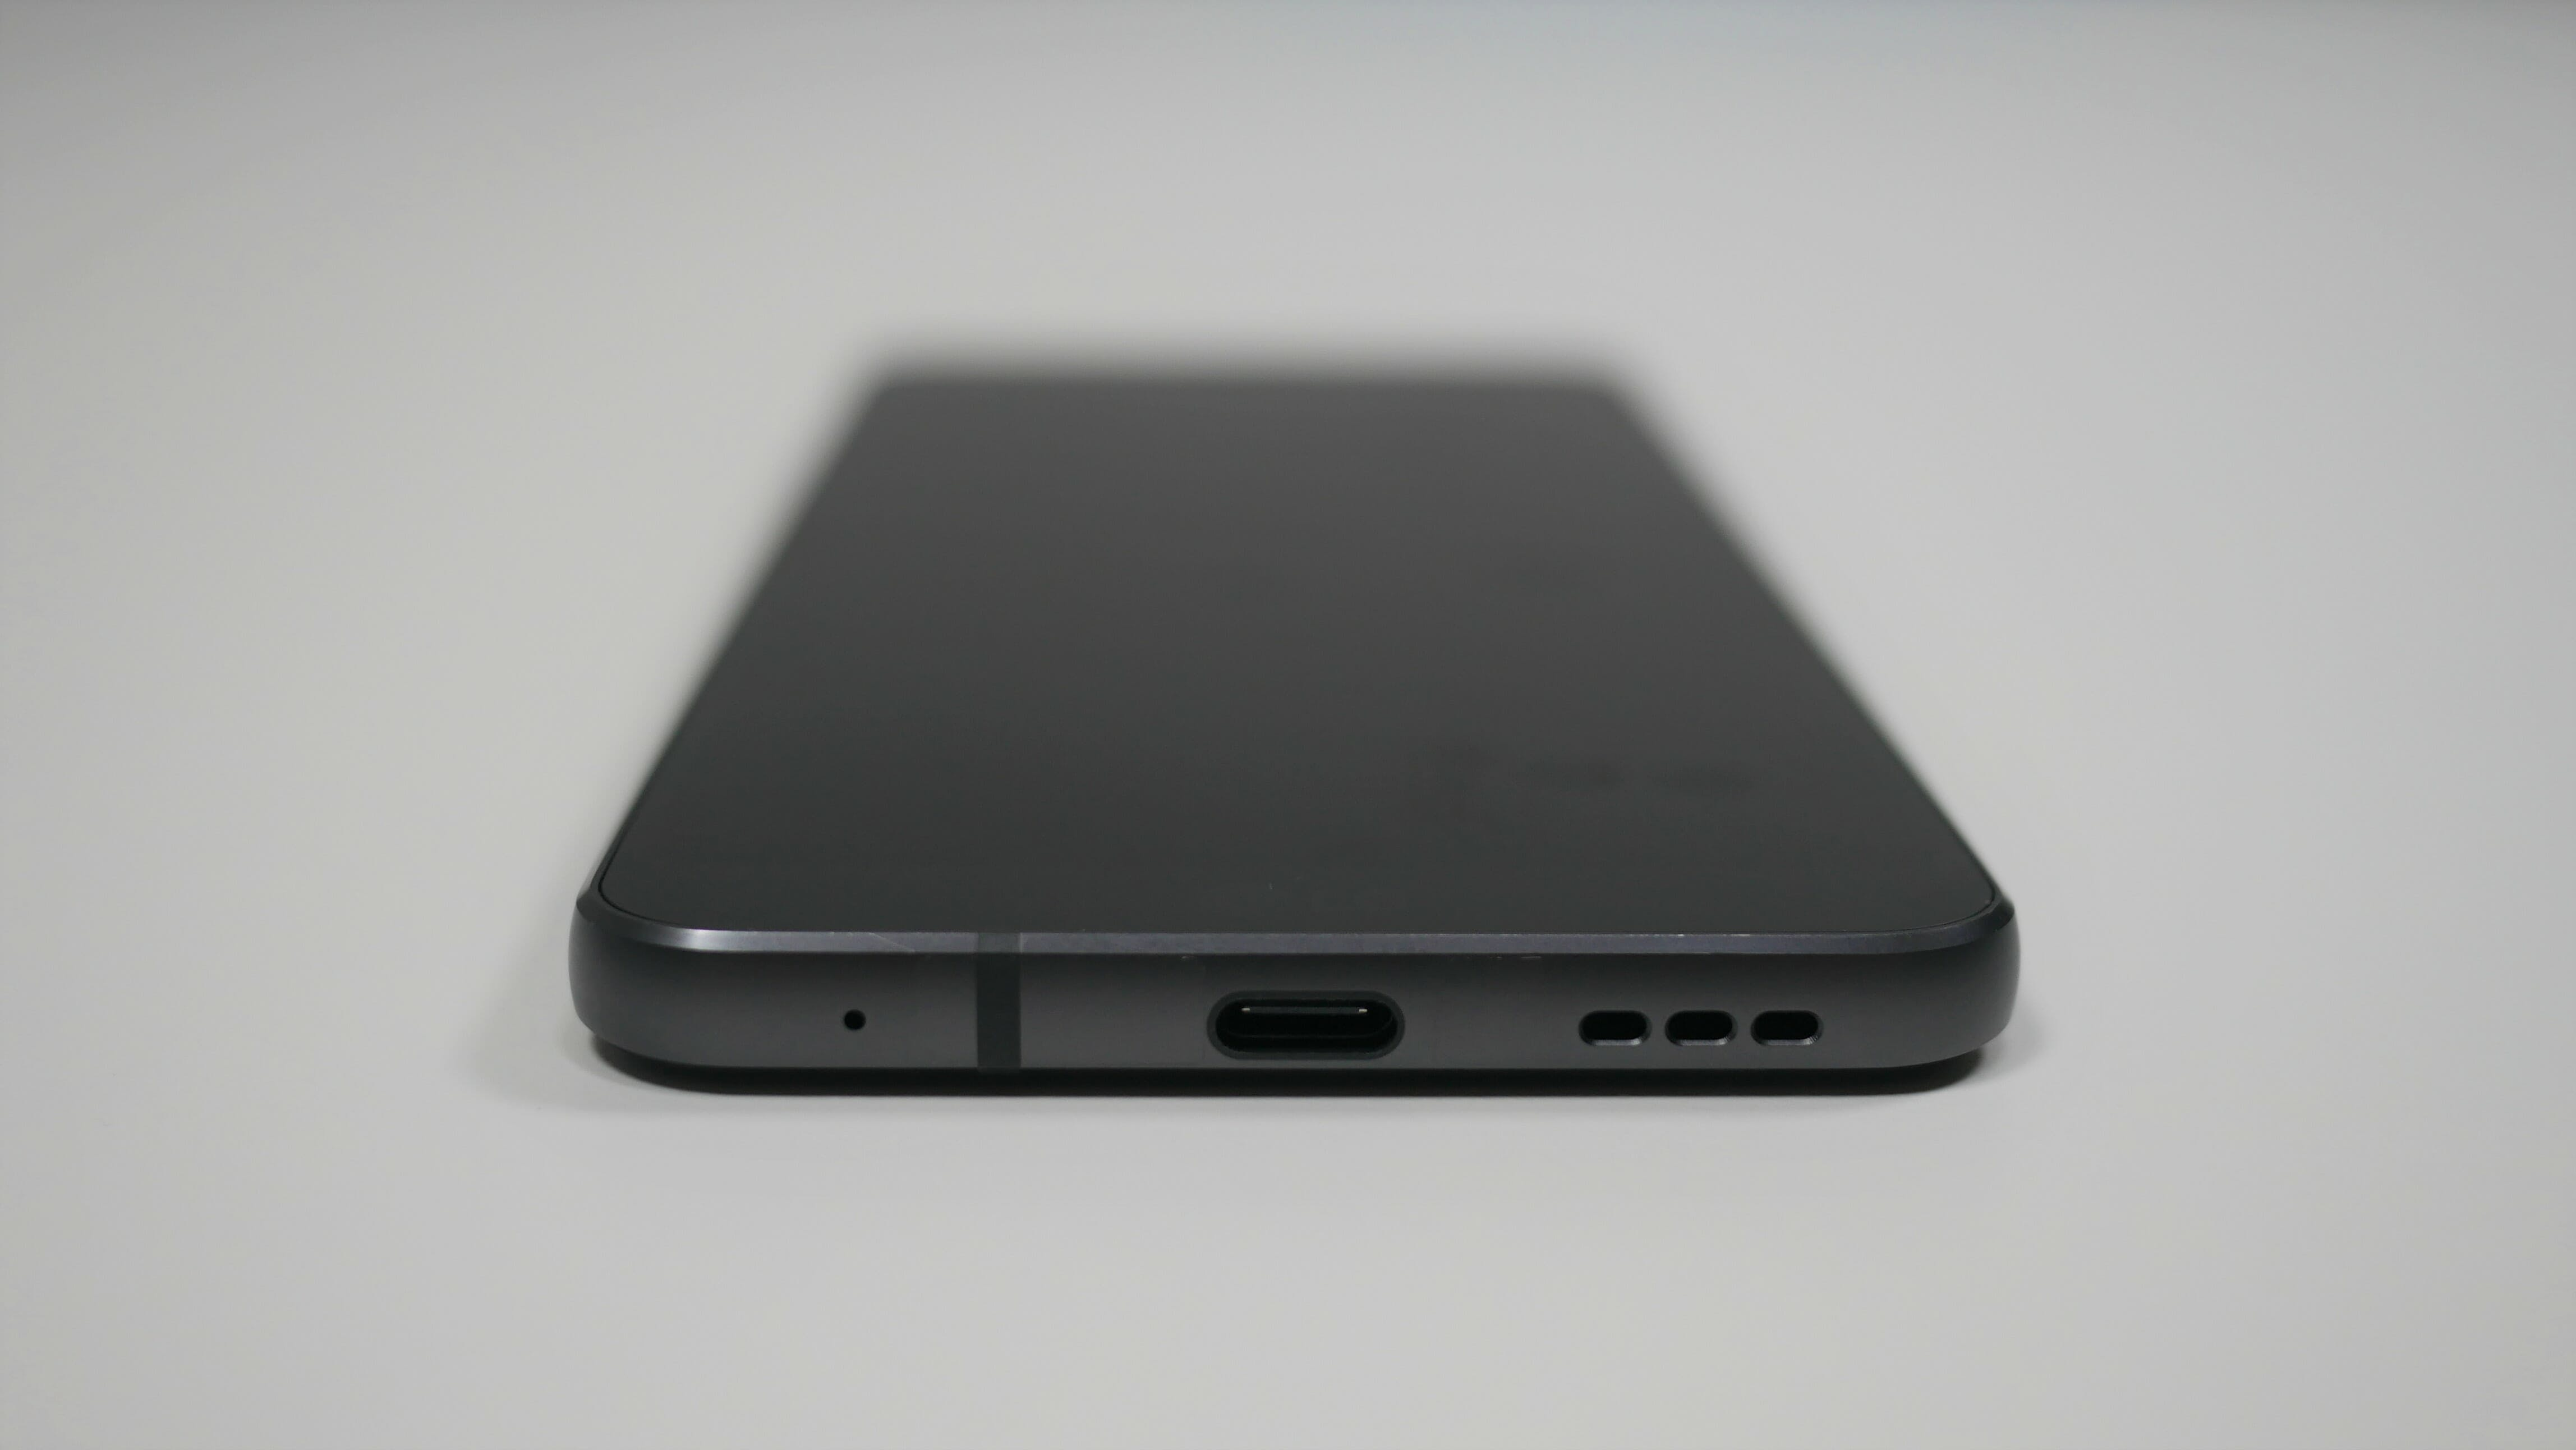 LG G6 ports smartphone review